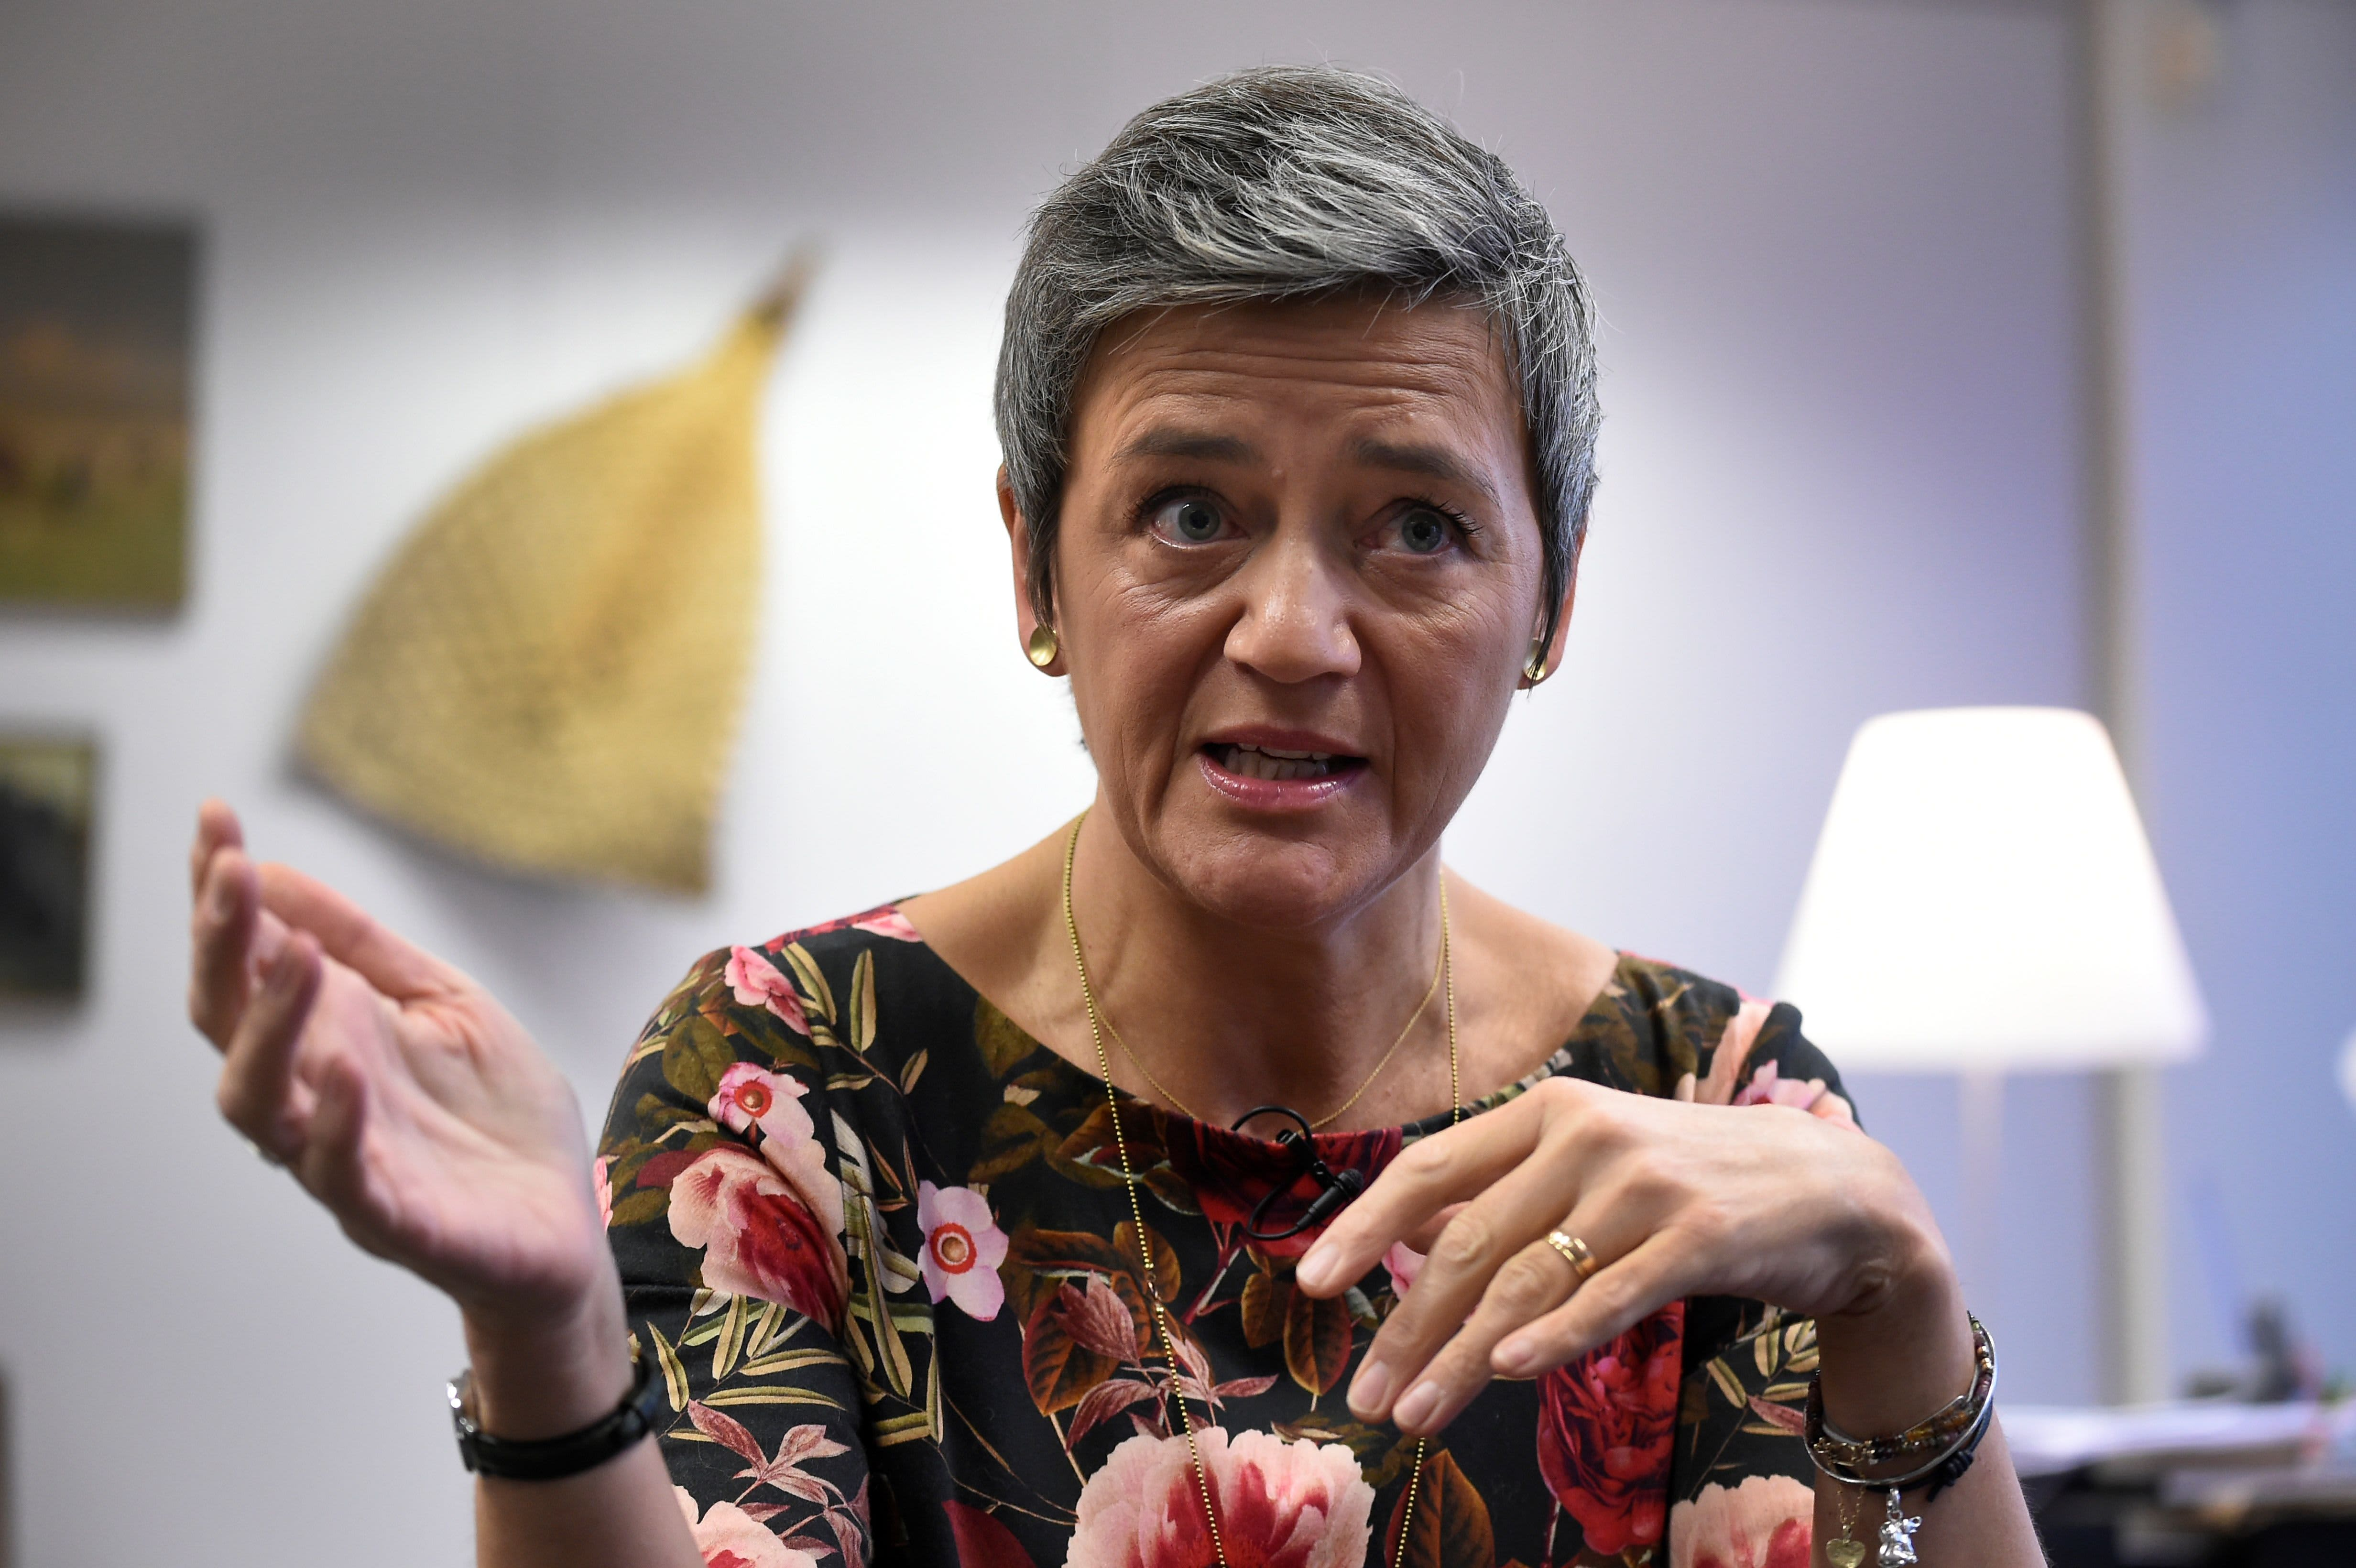 EU urged to investigate Apple Pay on competition concerns, Vestager says